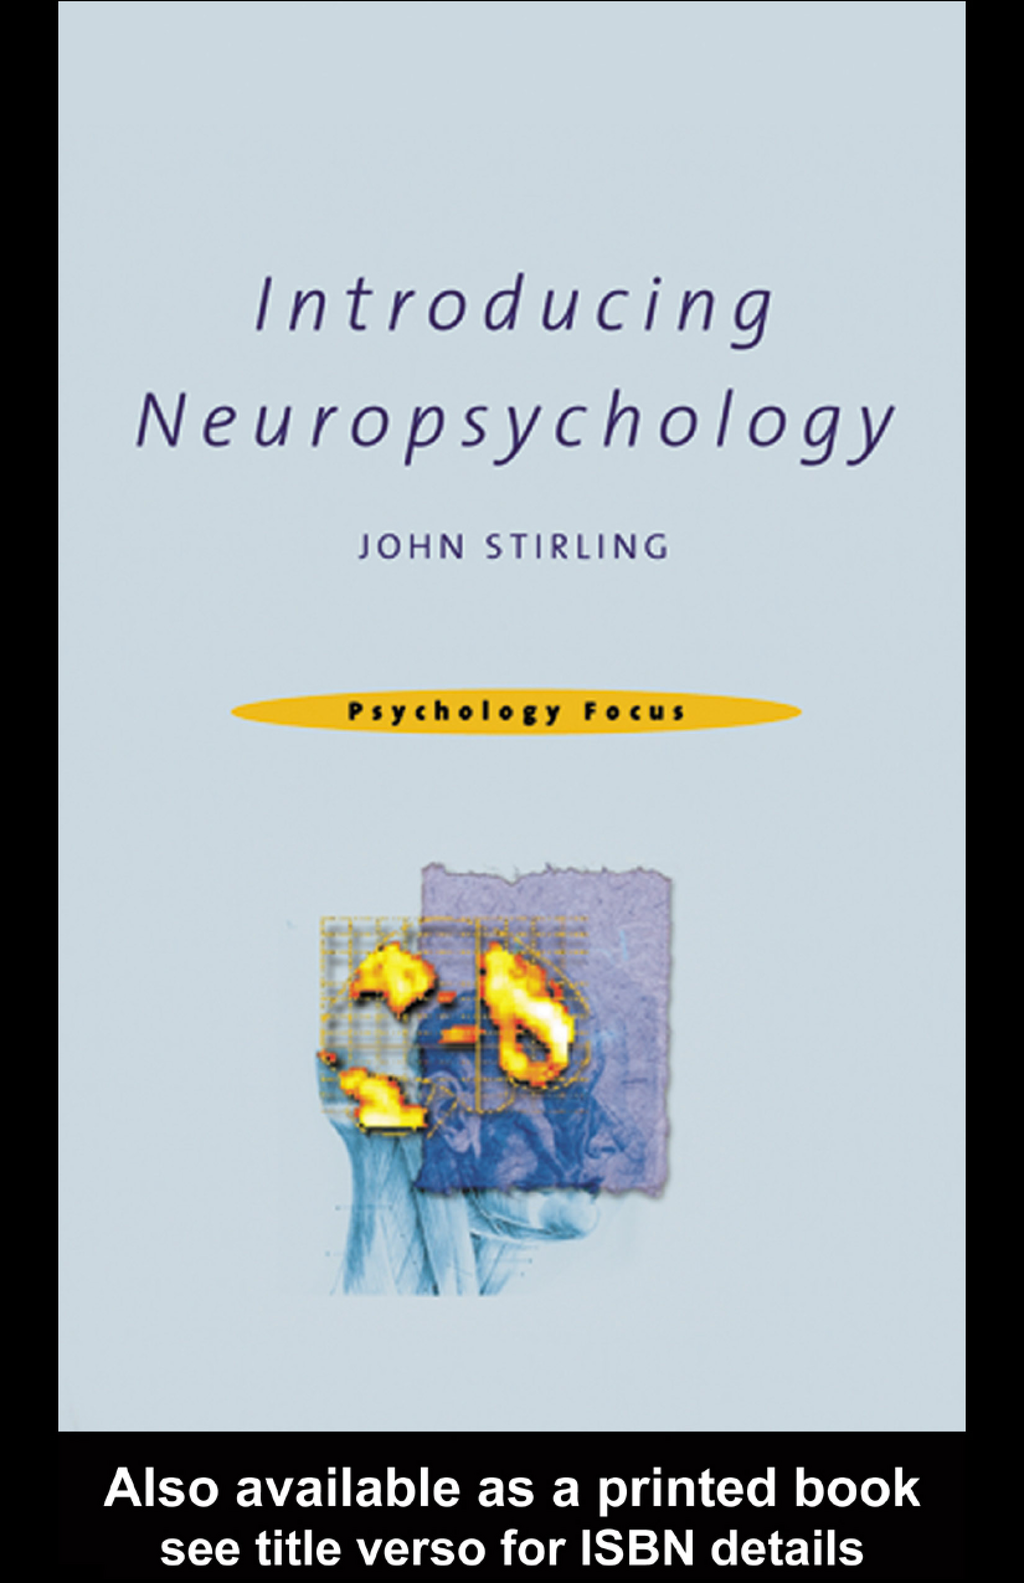 Introducing Neuropsychology